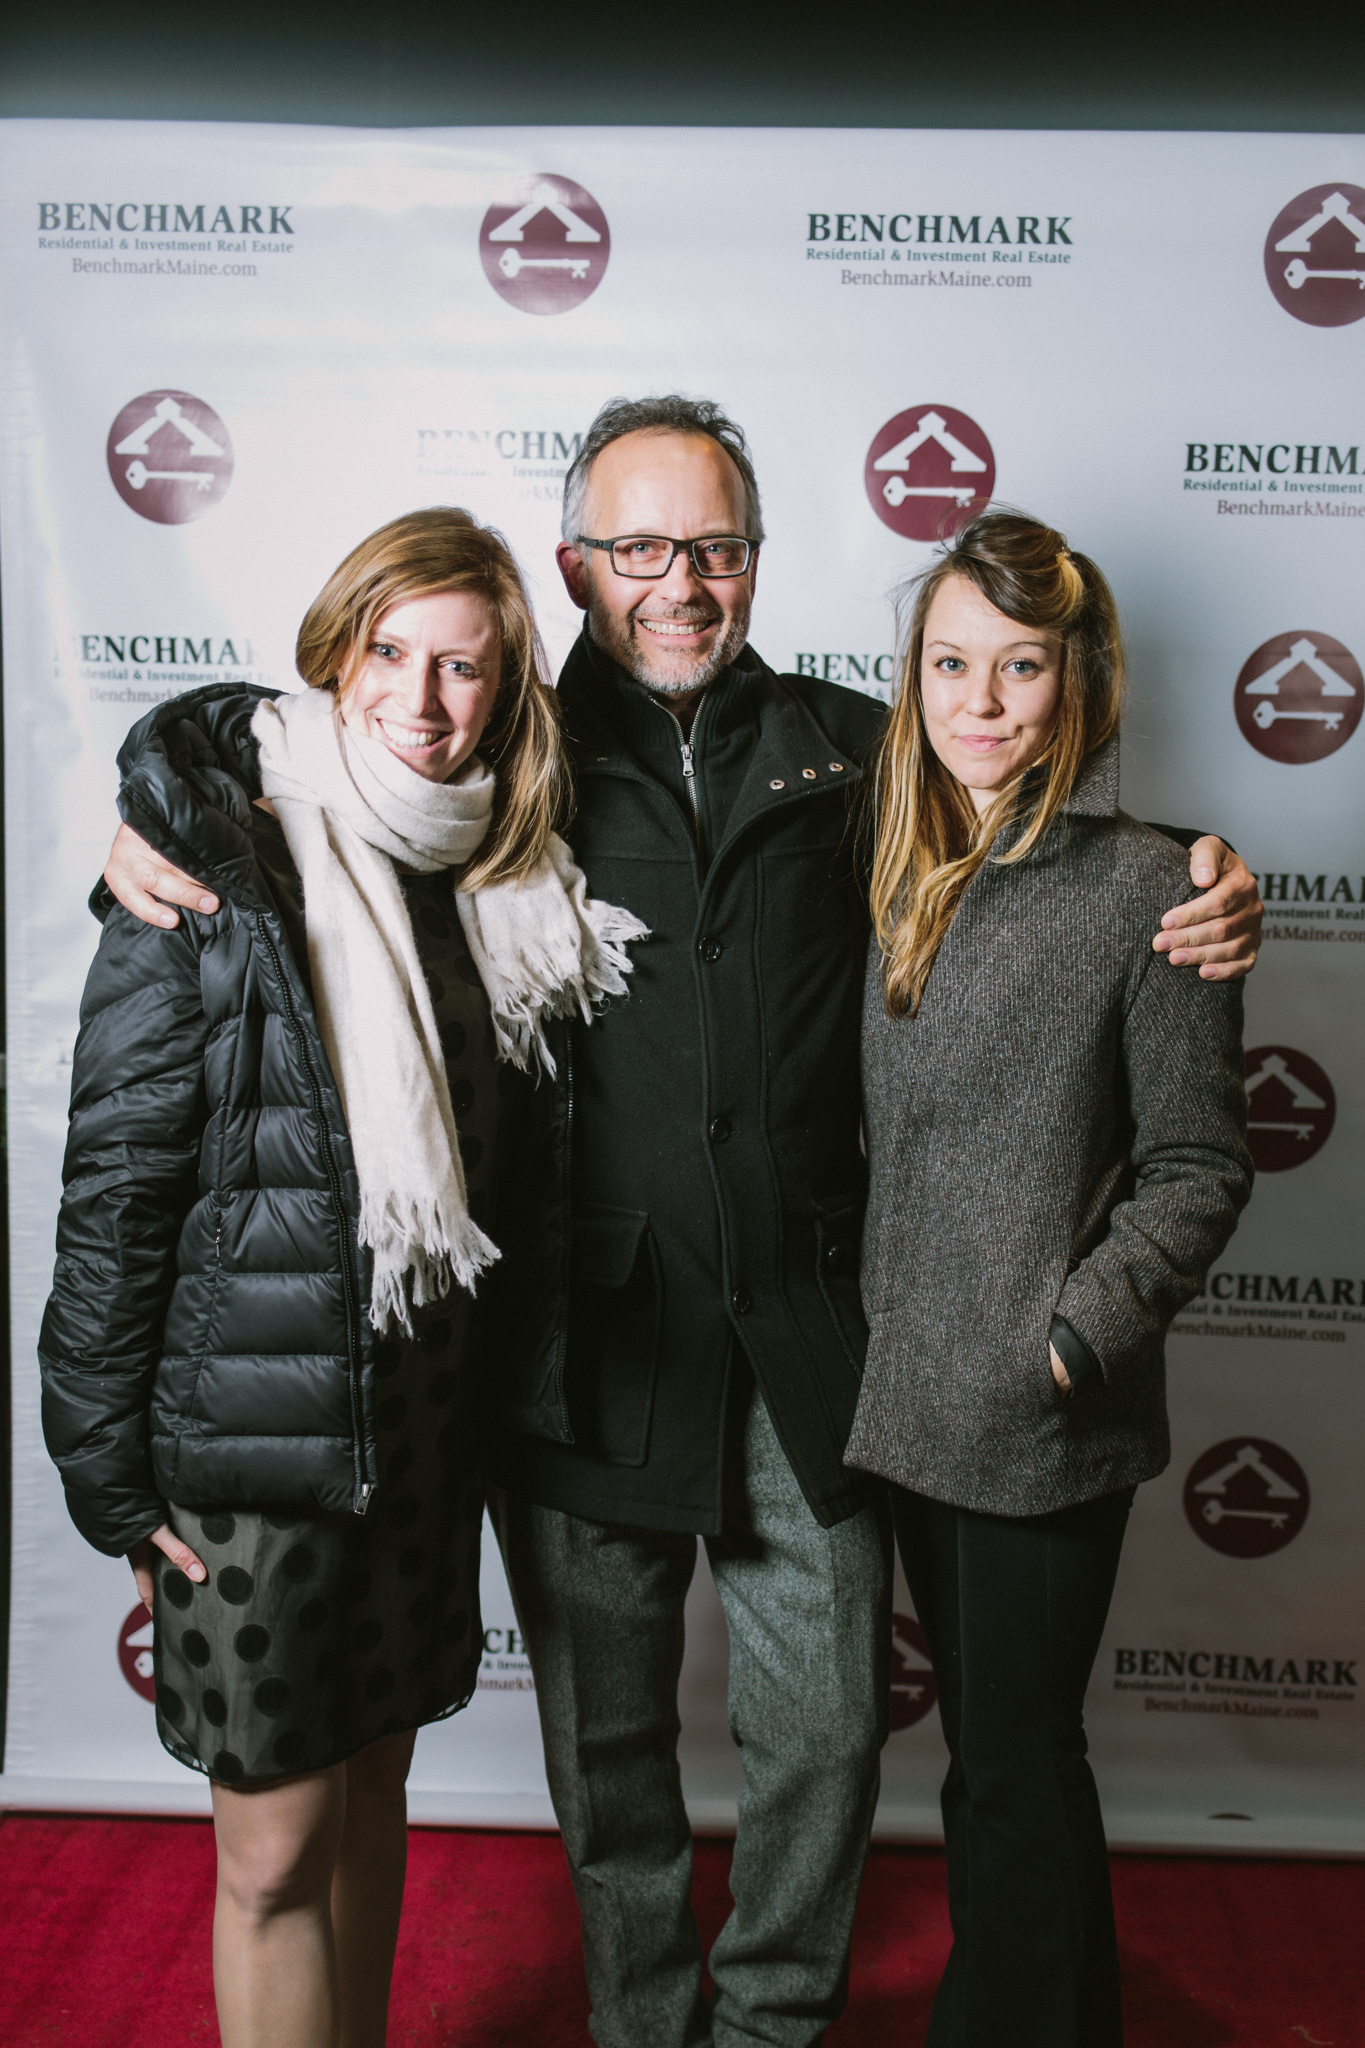 Benchmark_Holiday_Party_SR-083.jpg